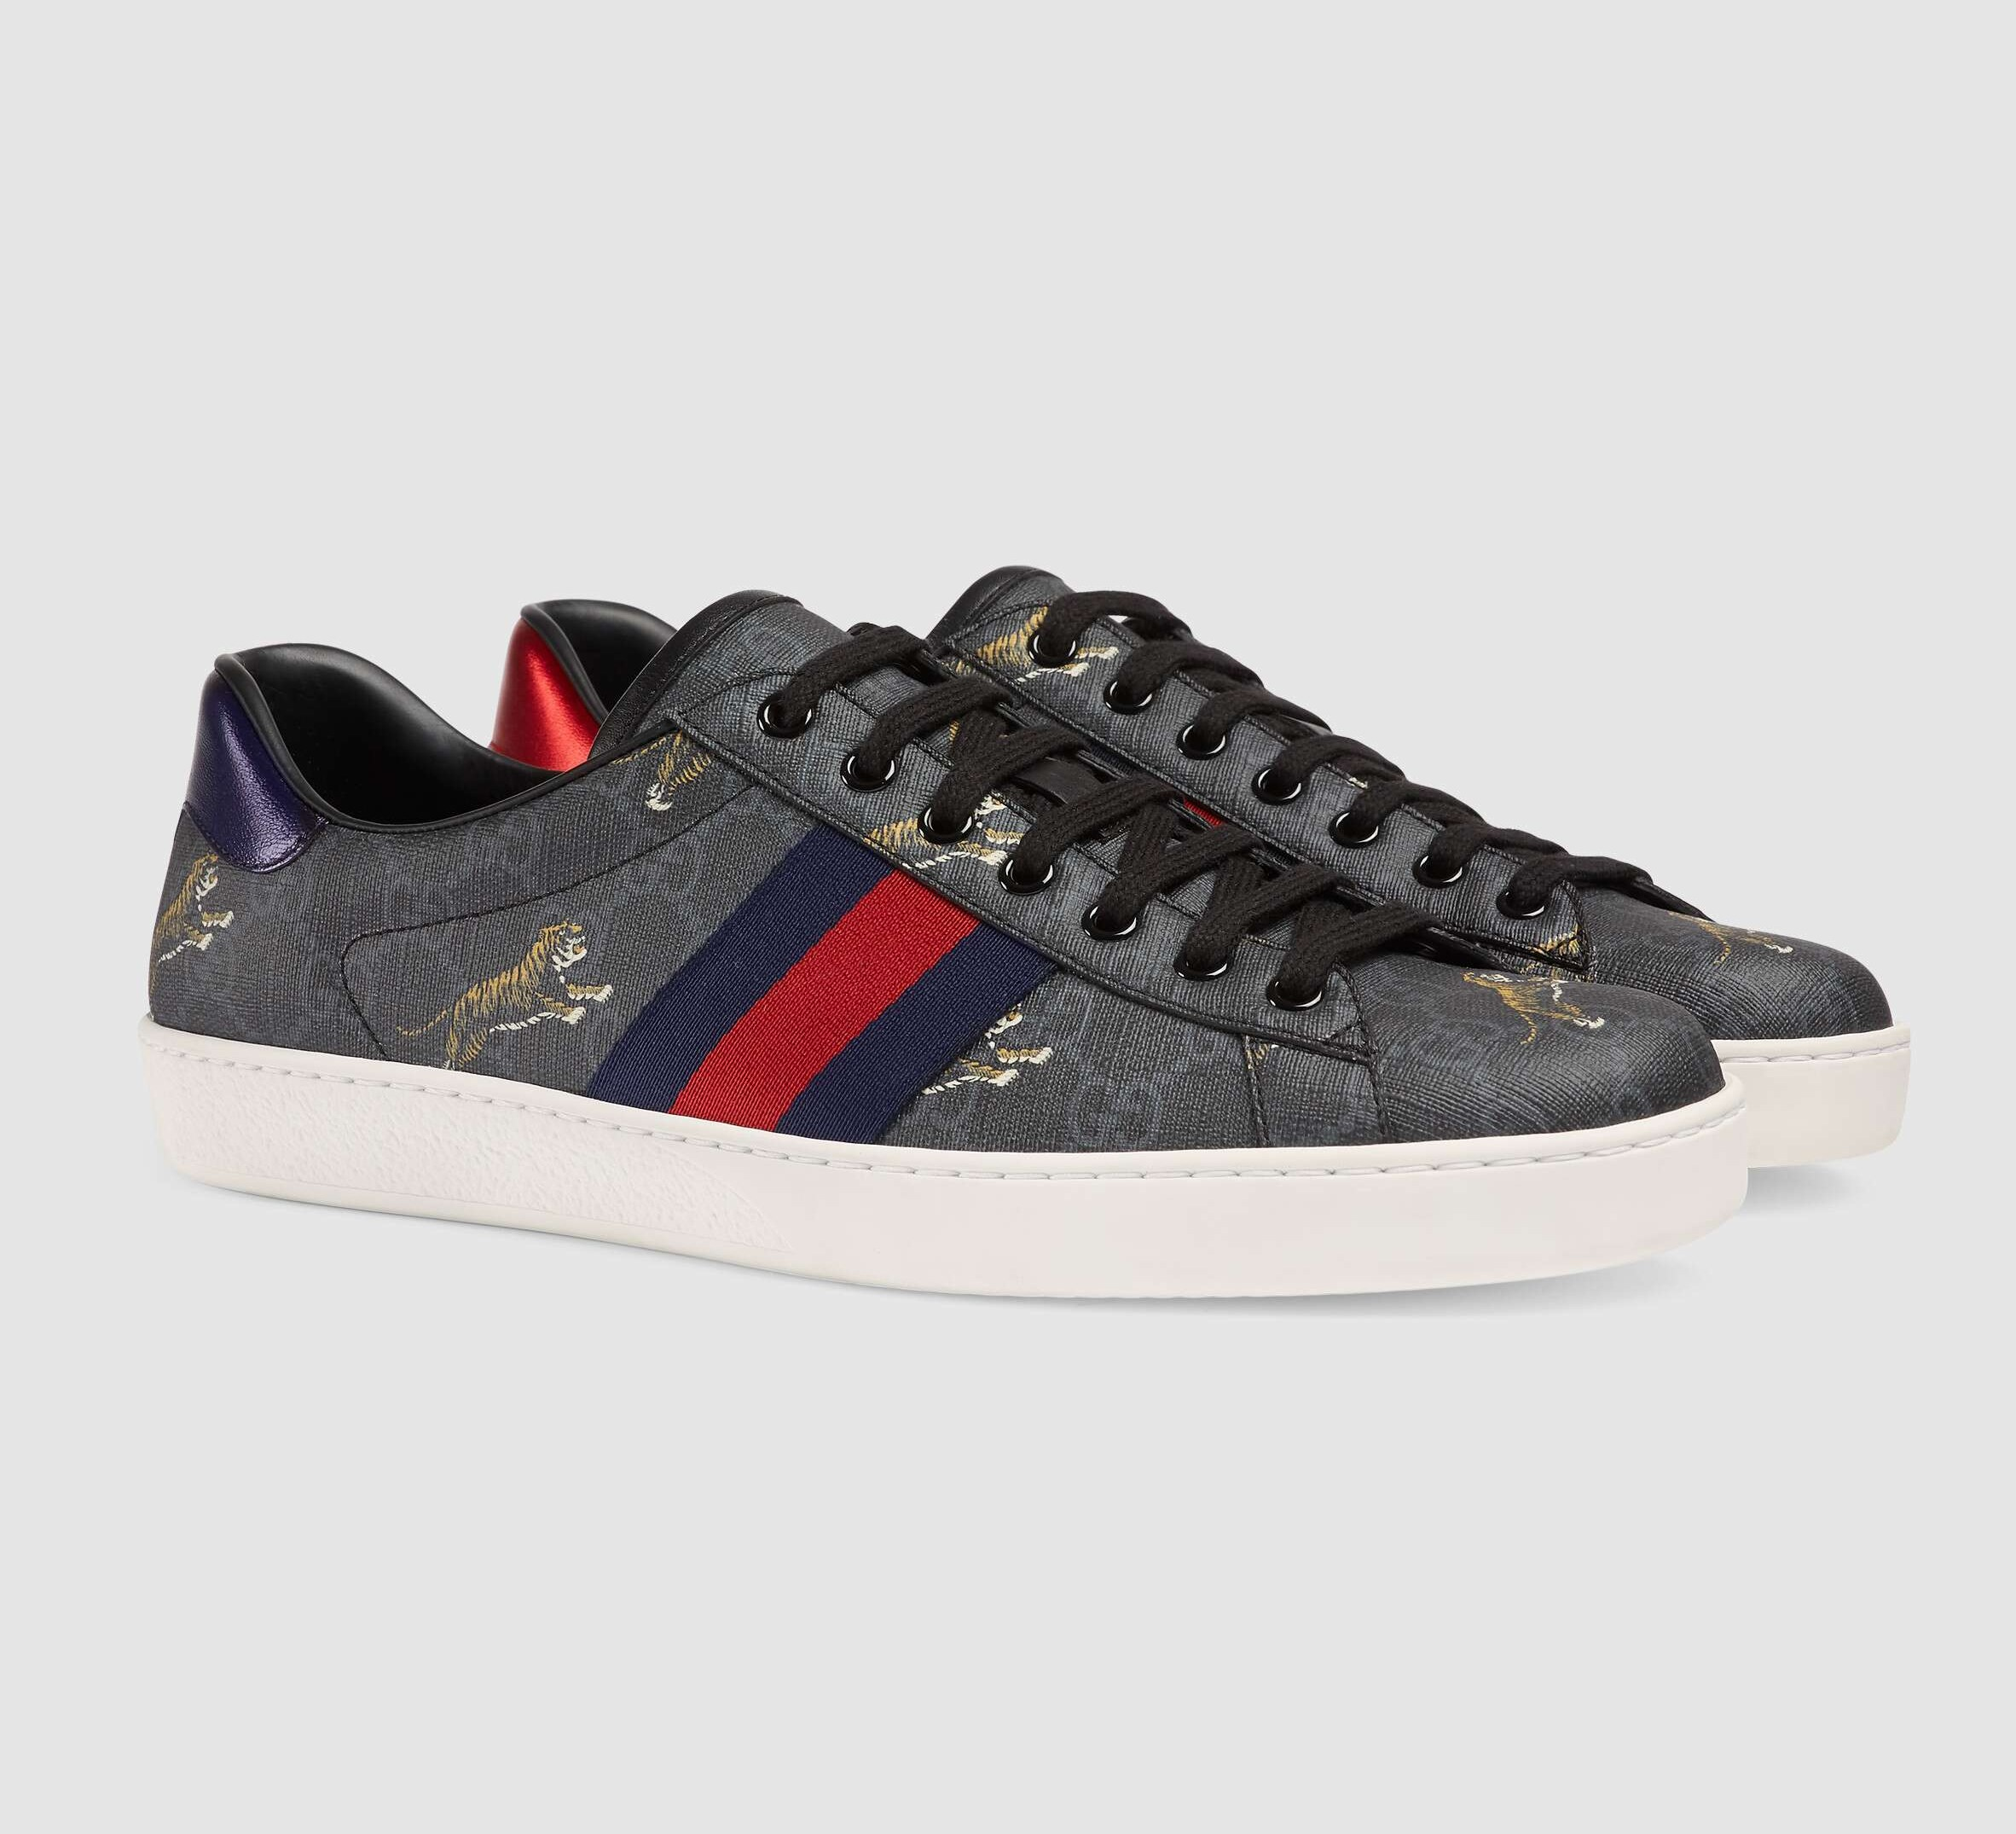 Gucci Ace GG Supreme Tigers Sneaker 429445 Black